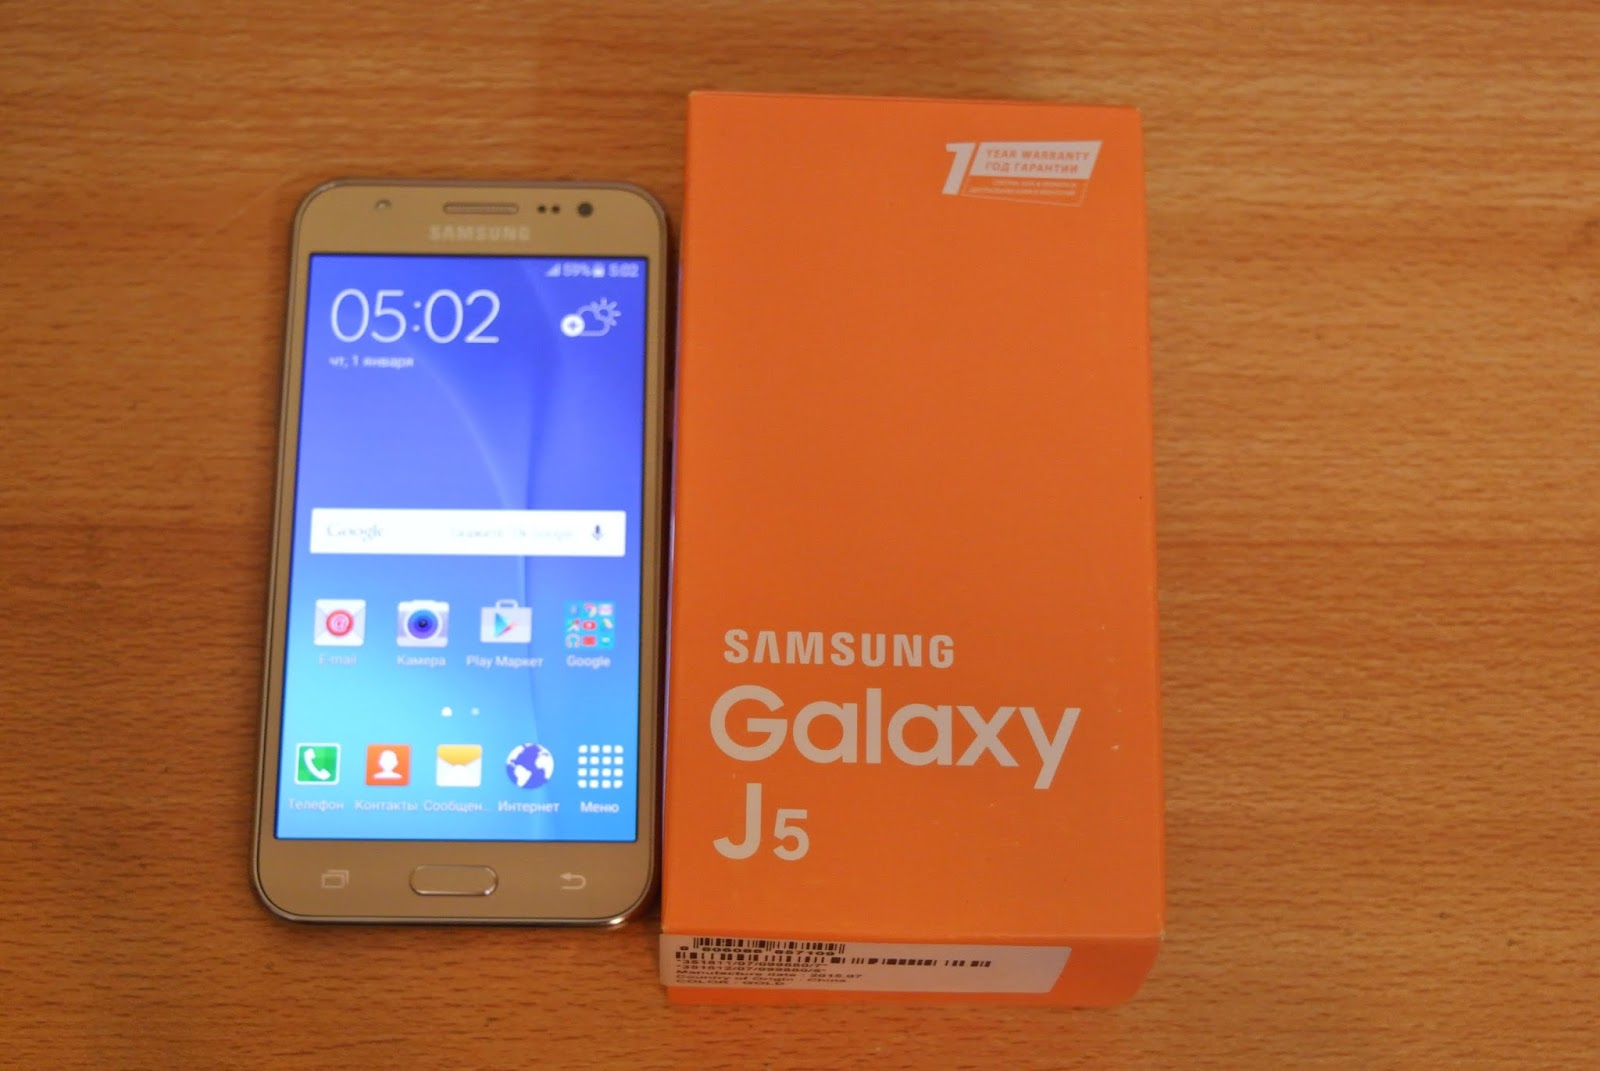 Technical Informatics And Revisions Sasang Galaxy S7 Samsung J5 Smj500 8gb The Is One Of Samsungs Two New Budget Offerings Other Being J7 Phones Undercut Previous Launched E Series Devices